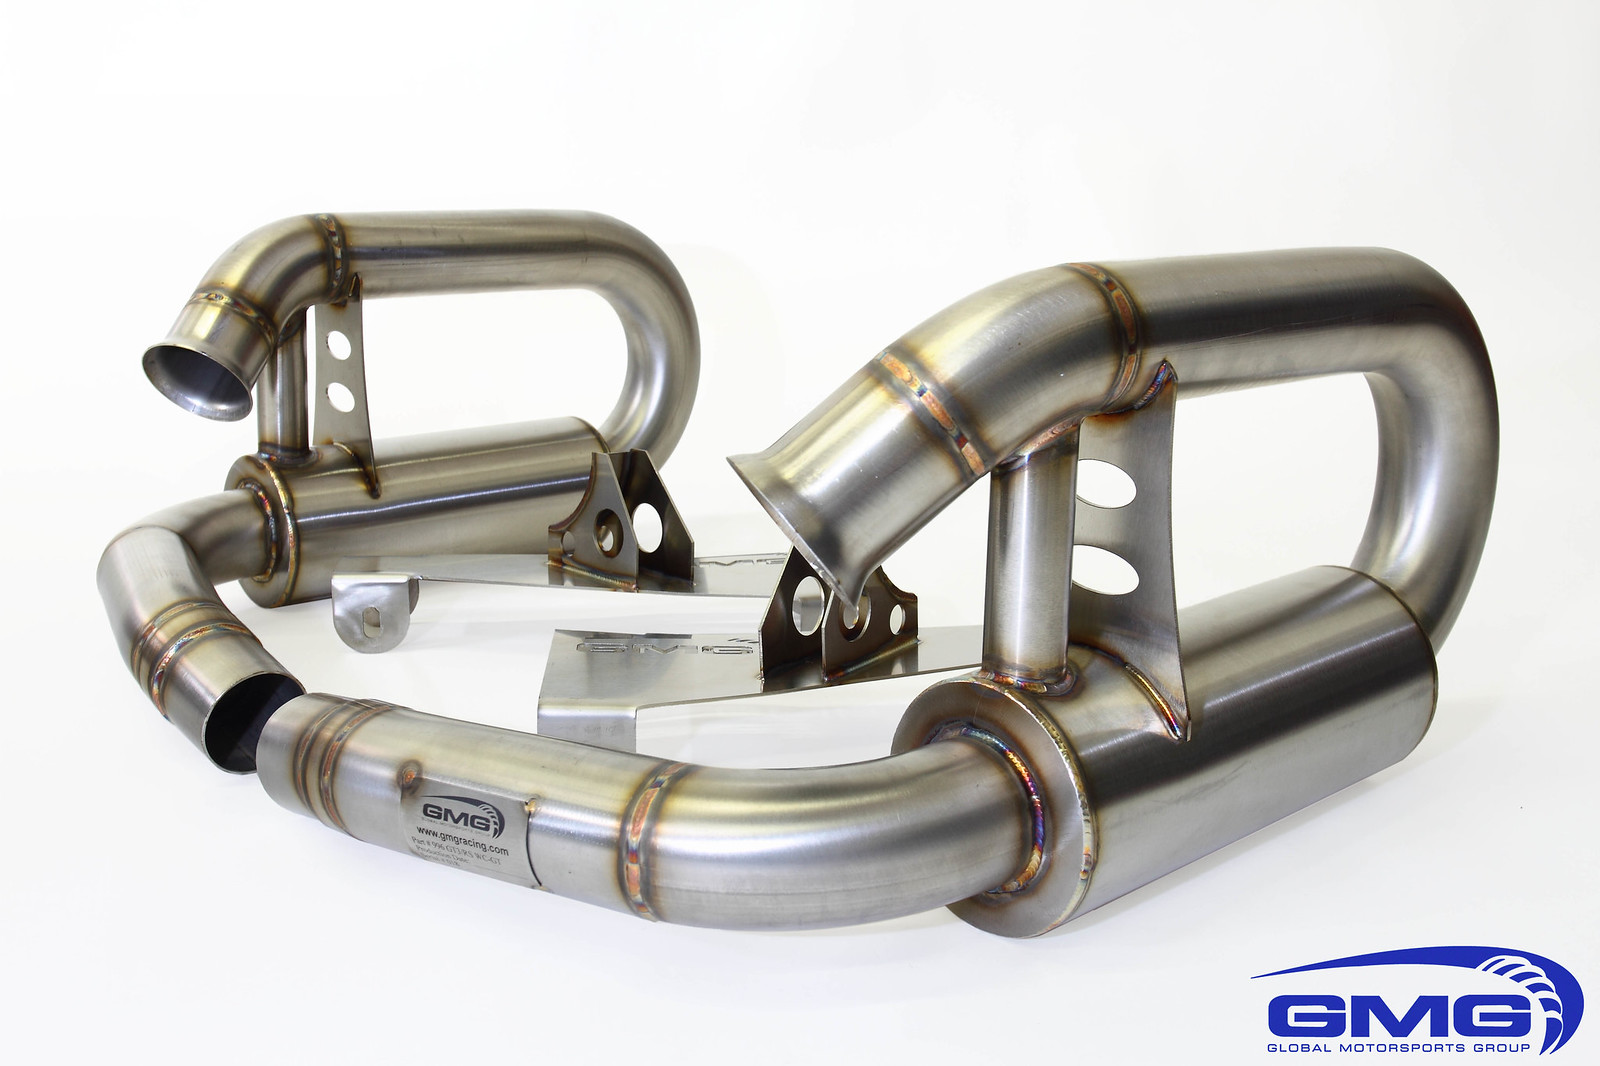 Gmg Porsche 996 Gt3 Sport Muffler Exhaust Now In Stock